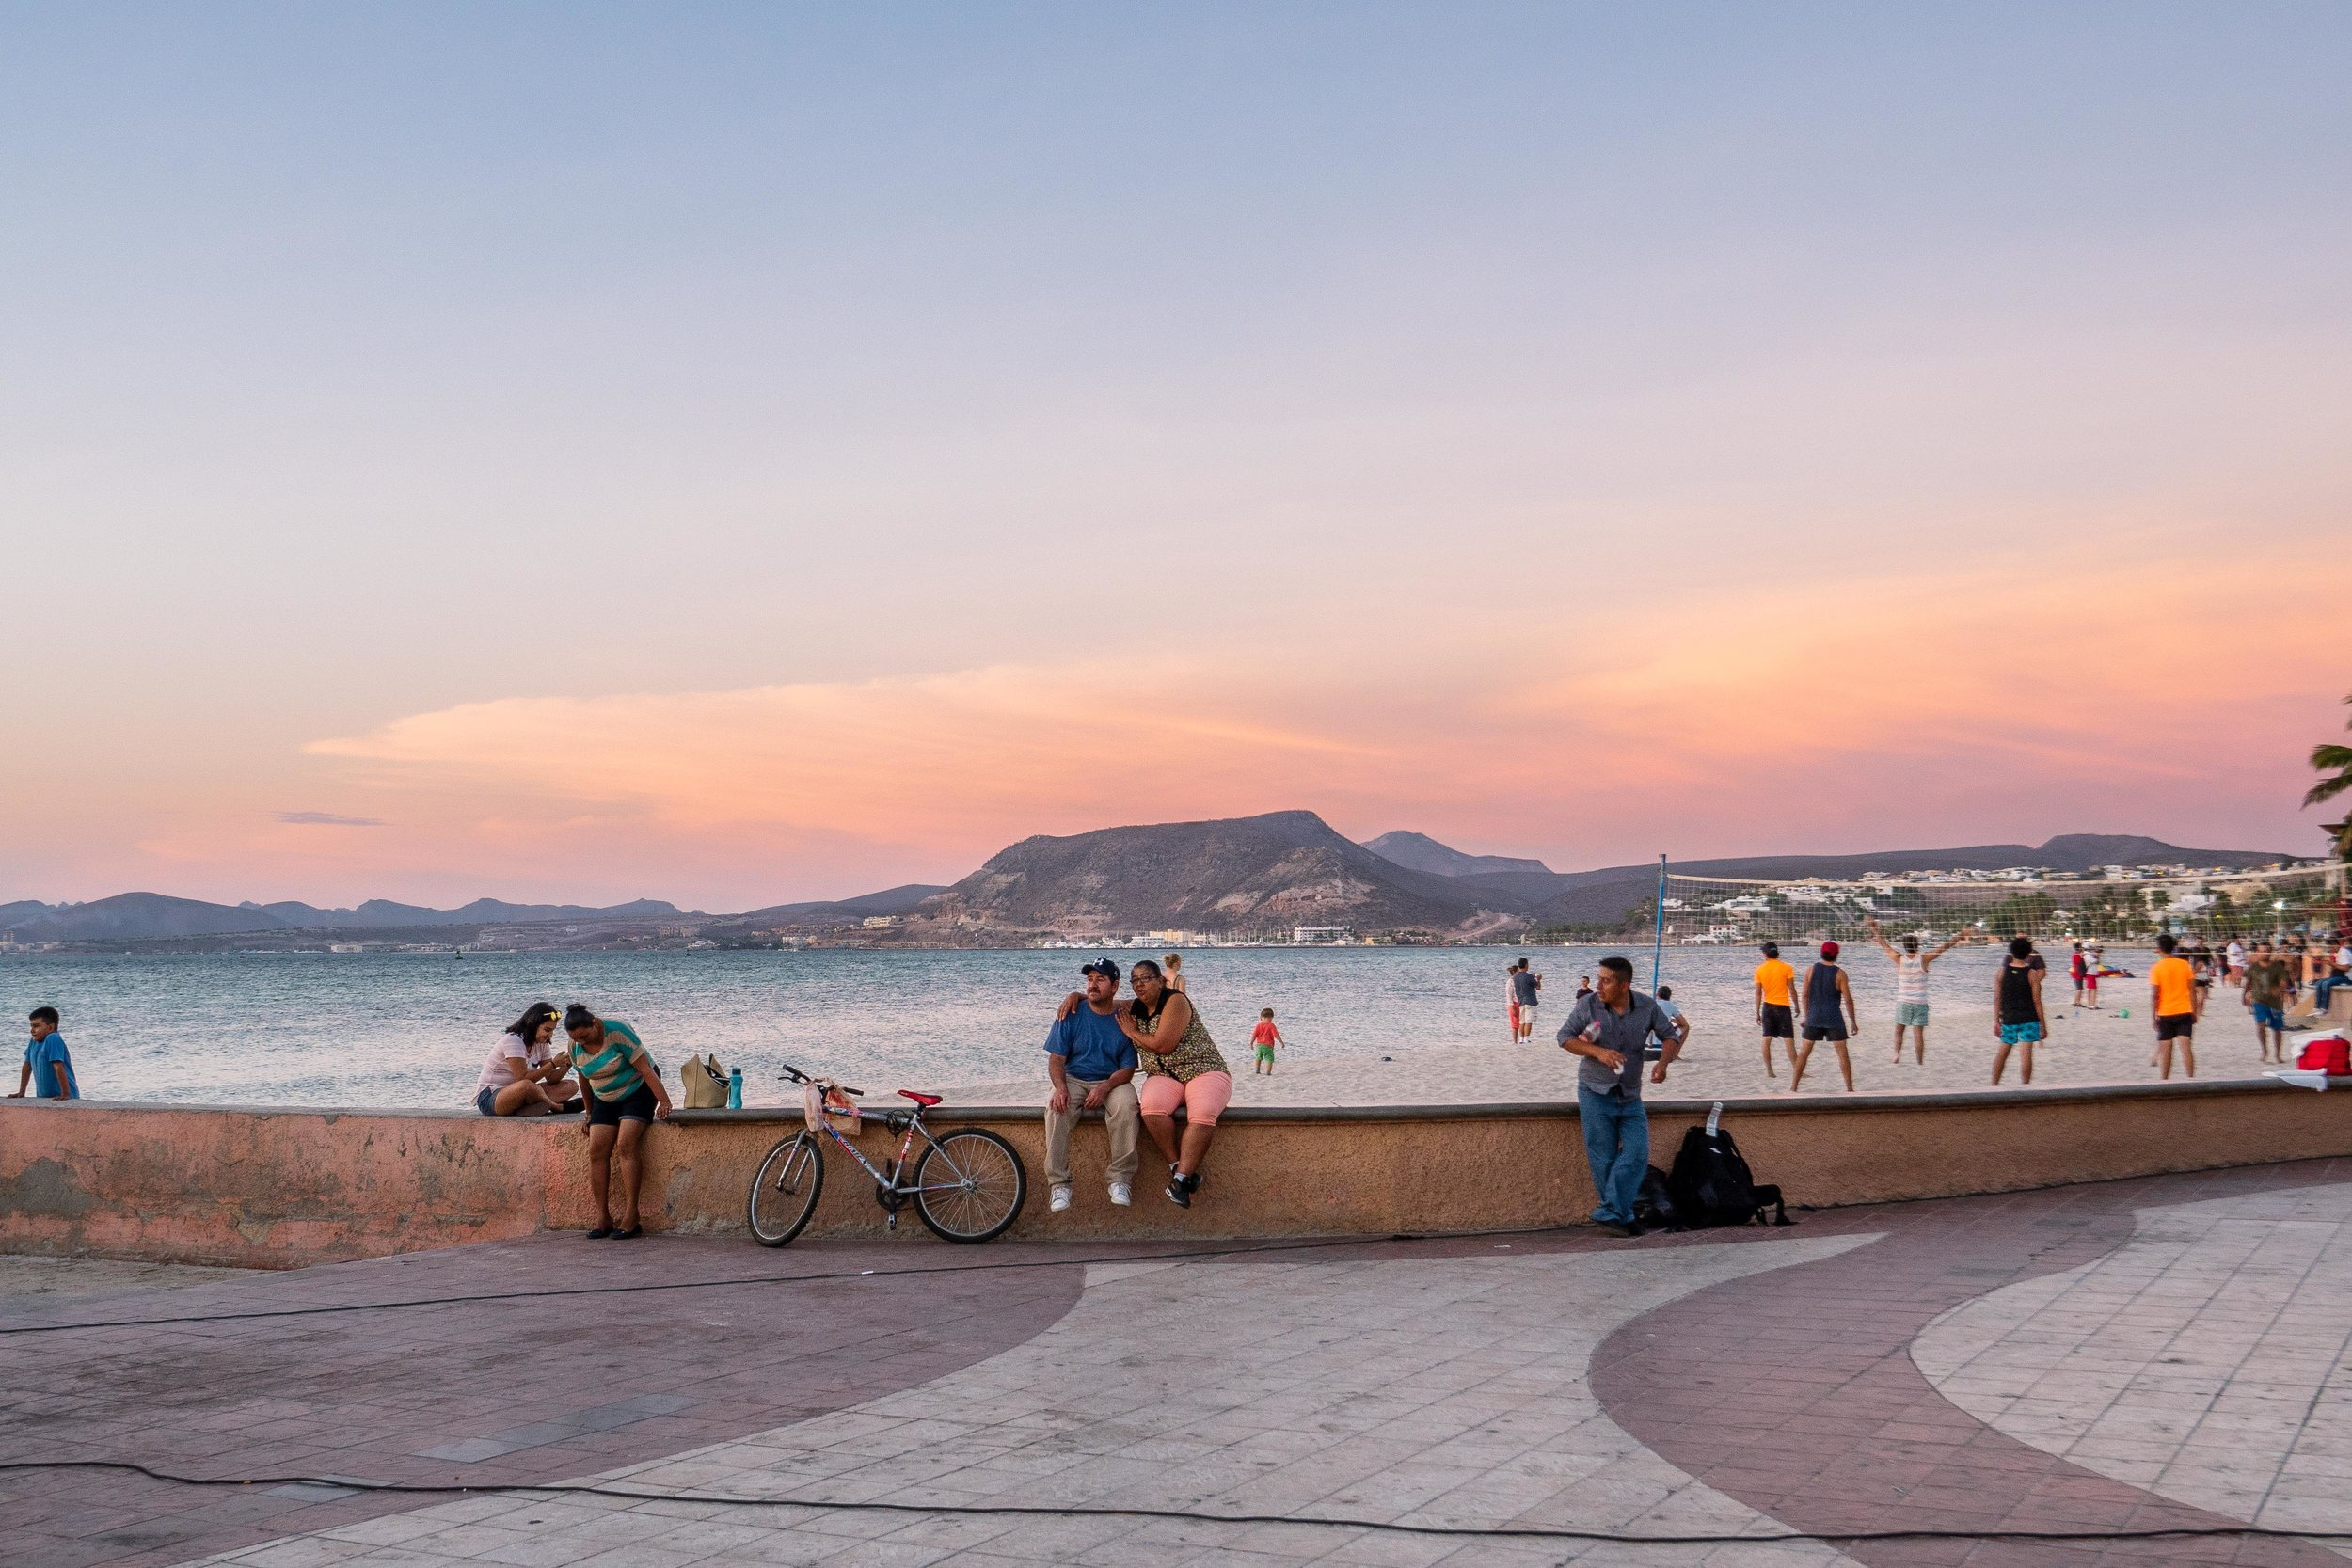 The street along the ocean in La Paz, El Malecon, bustles at sunset when the air is cool enough for people to come outside.